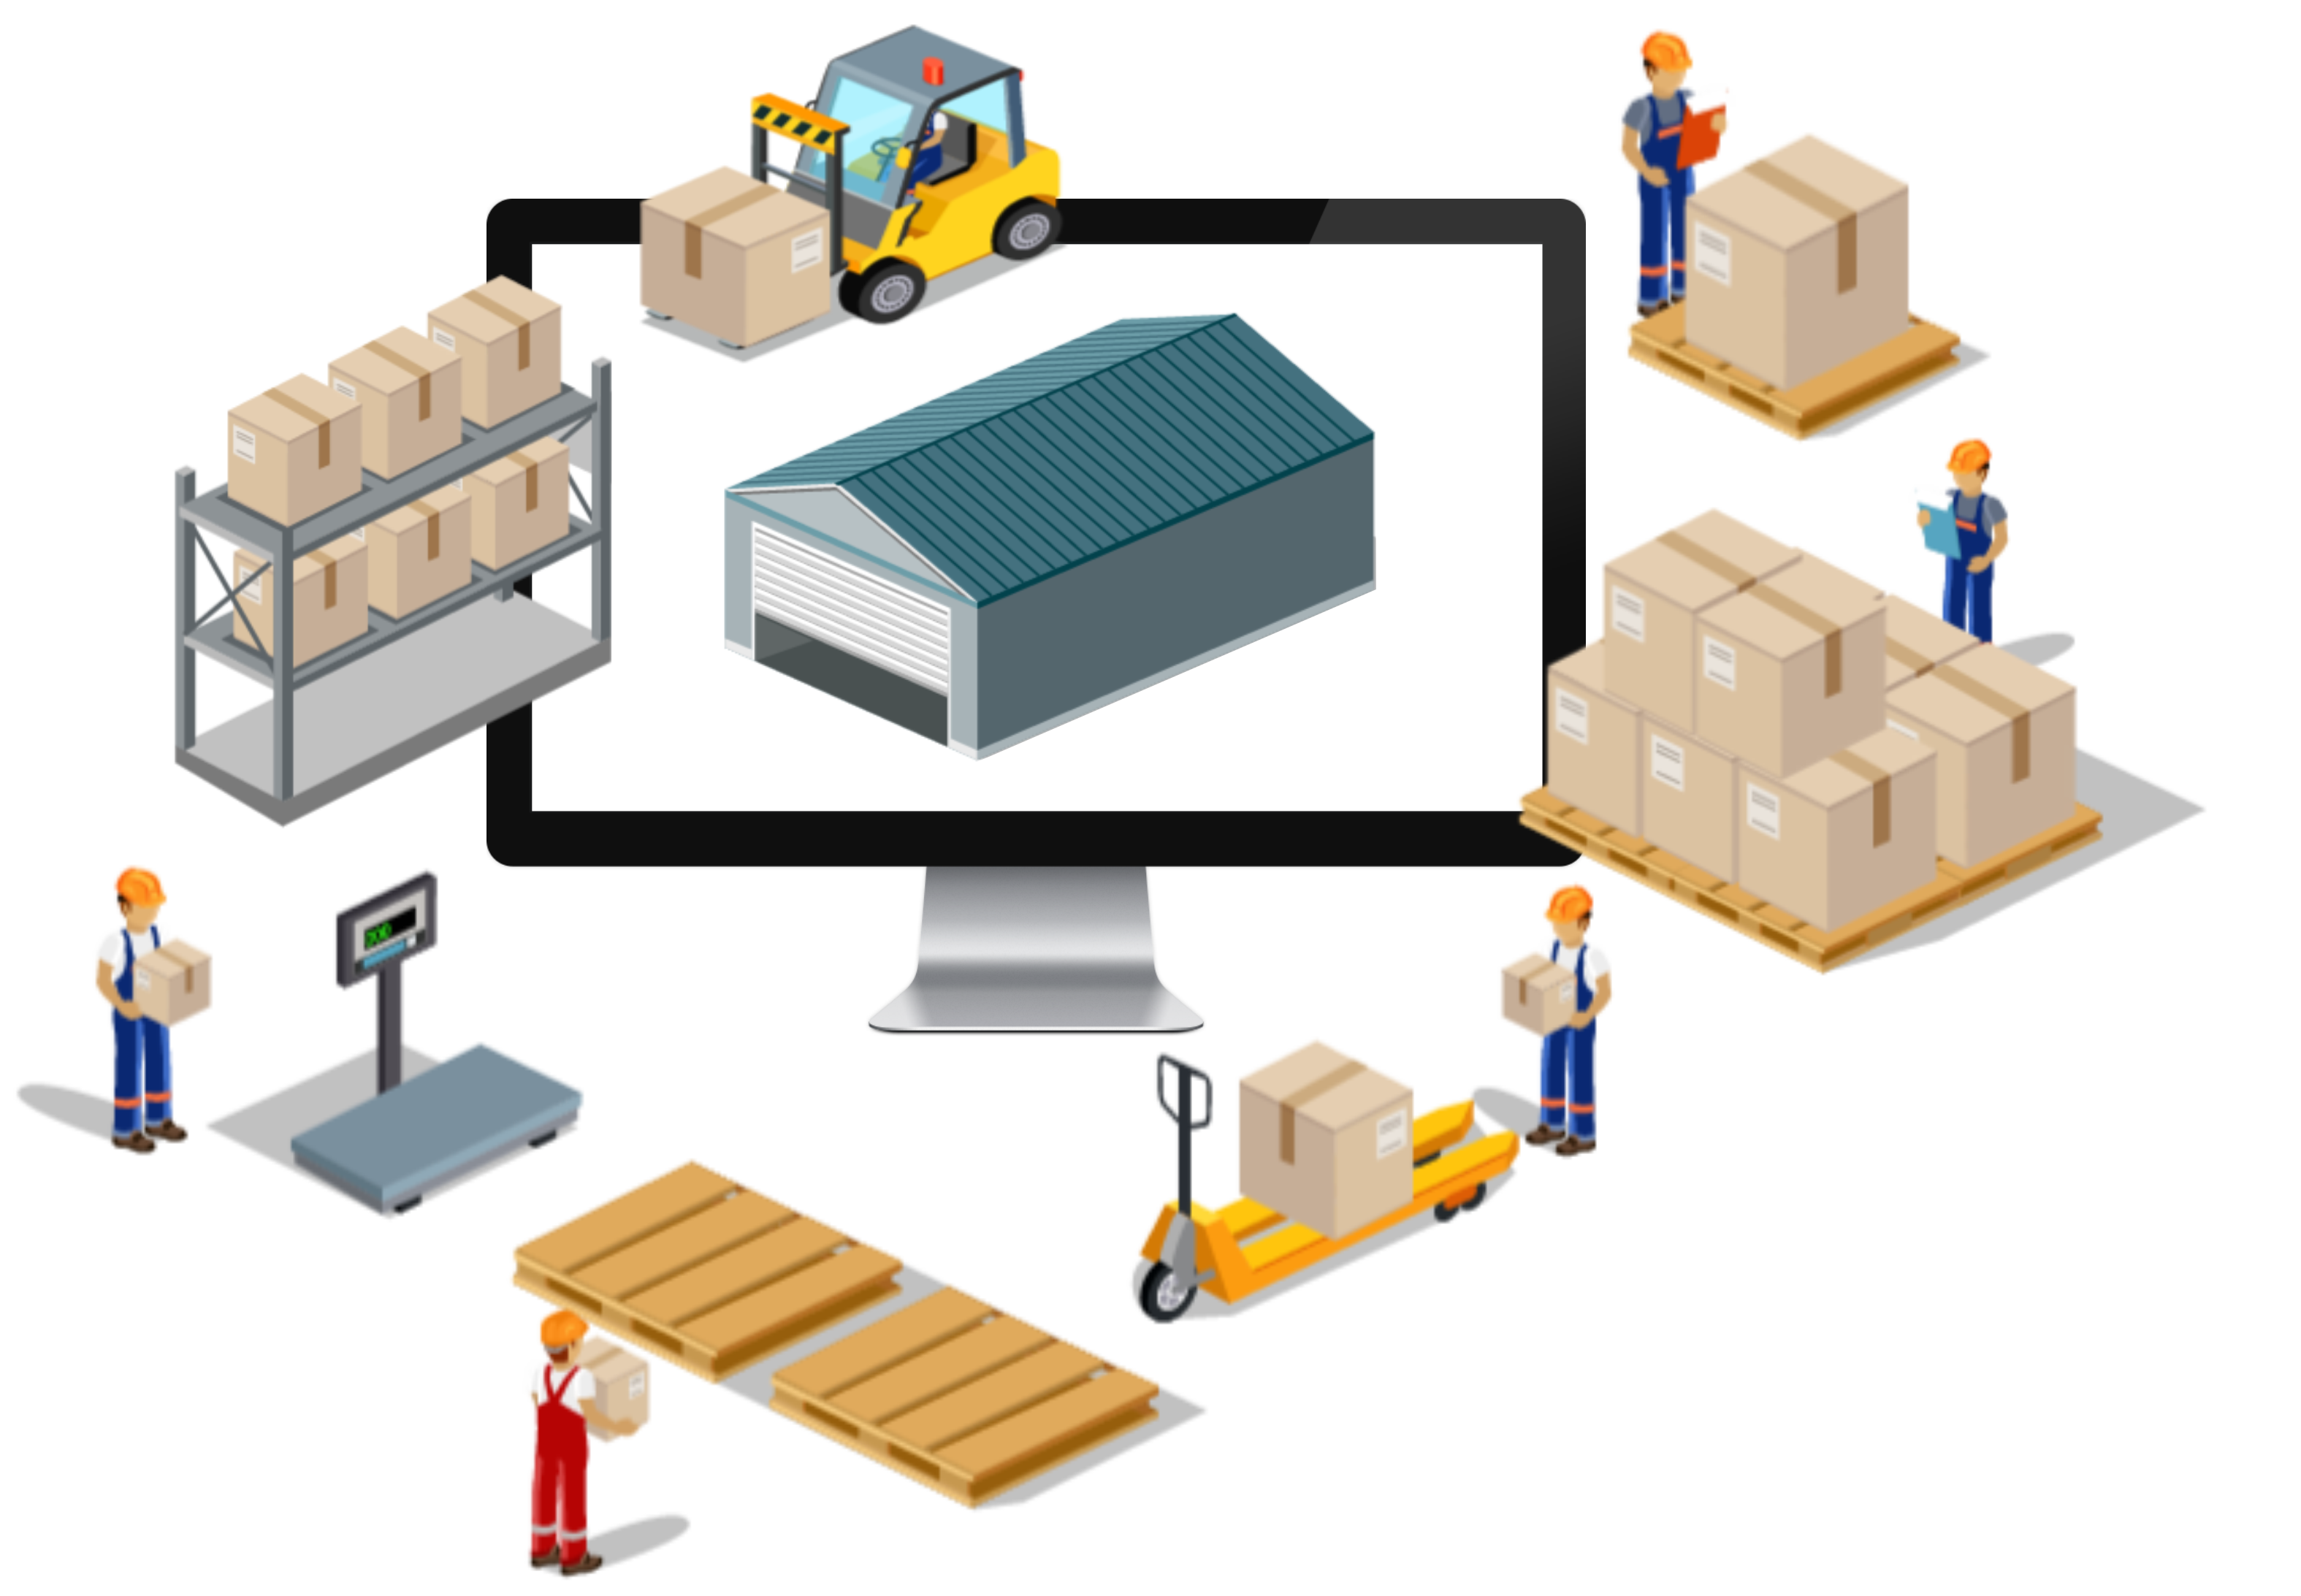 Warehouse Management System, Warehouse Management System, LogixGRID | Platform and Application for logistics management, LogixGRID | Platform and Application for logistics management